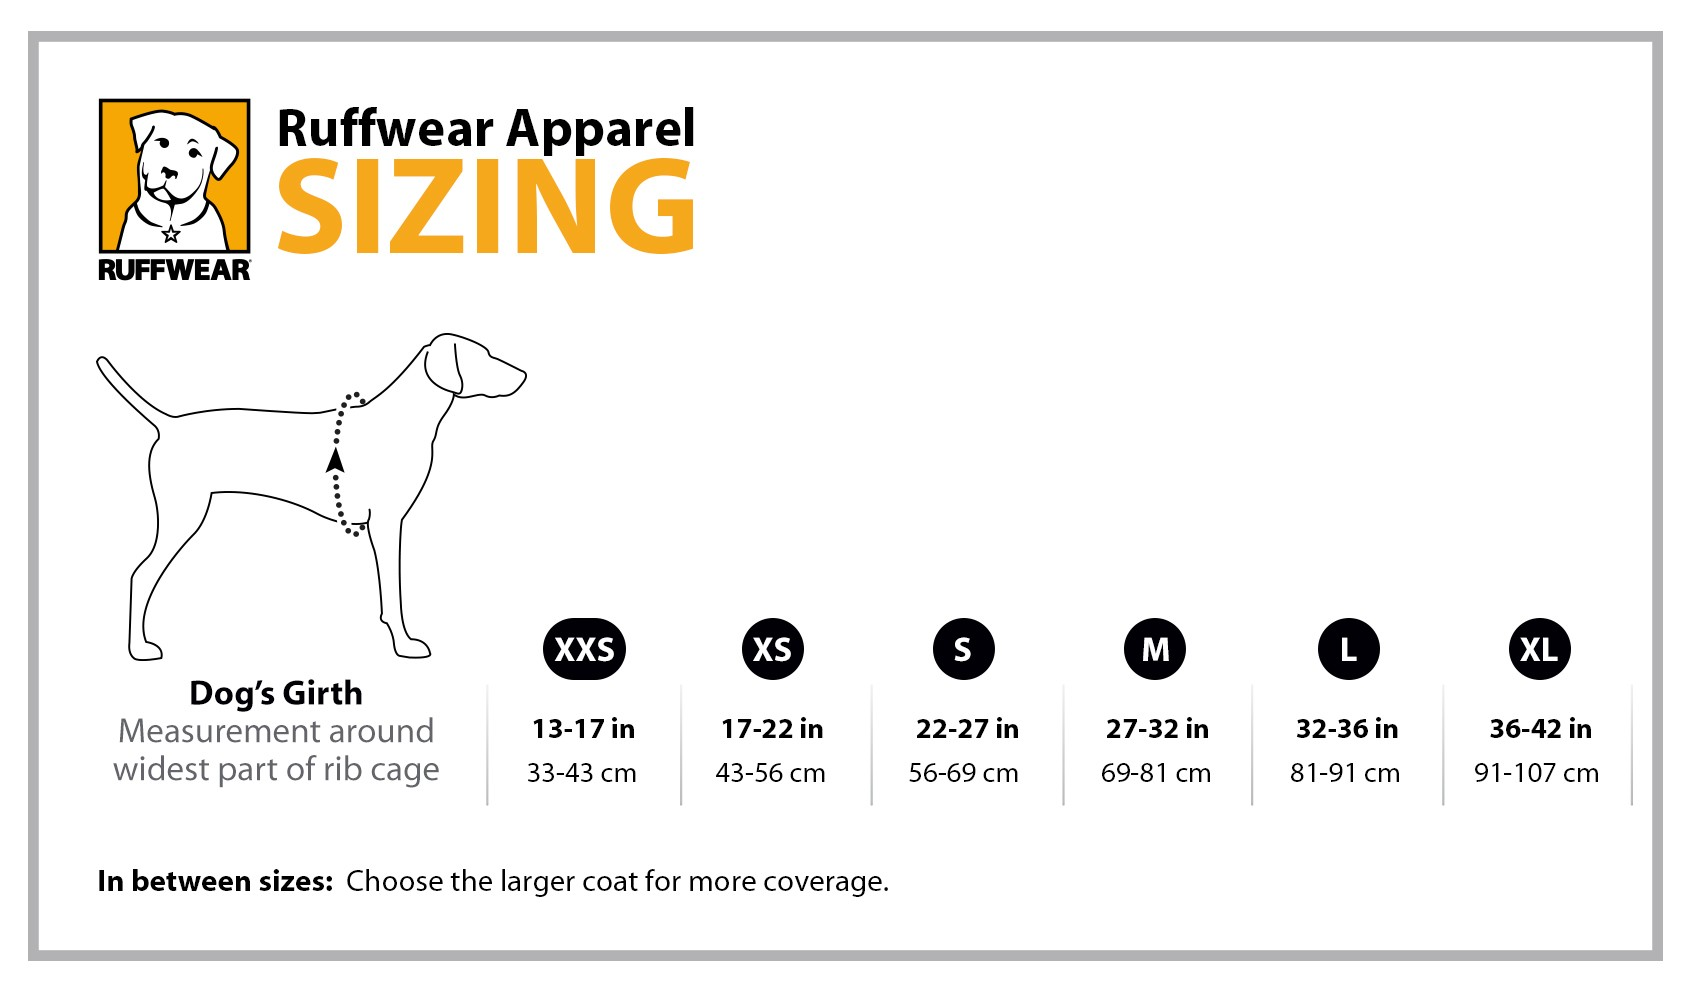 Ruffwear Apparel Size Guide